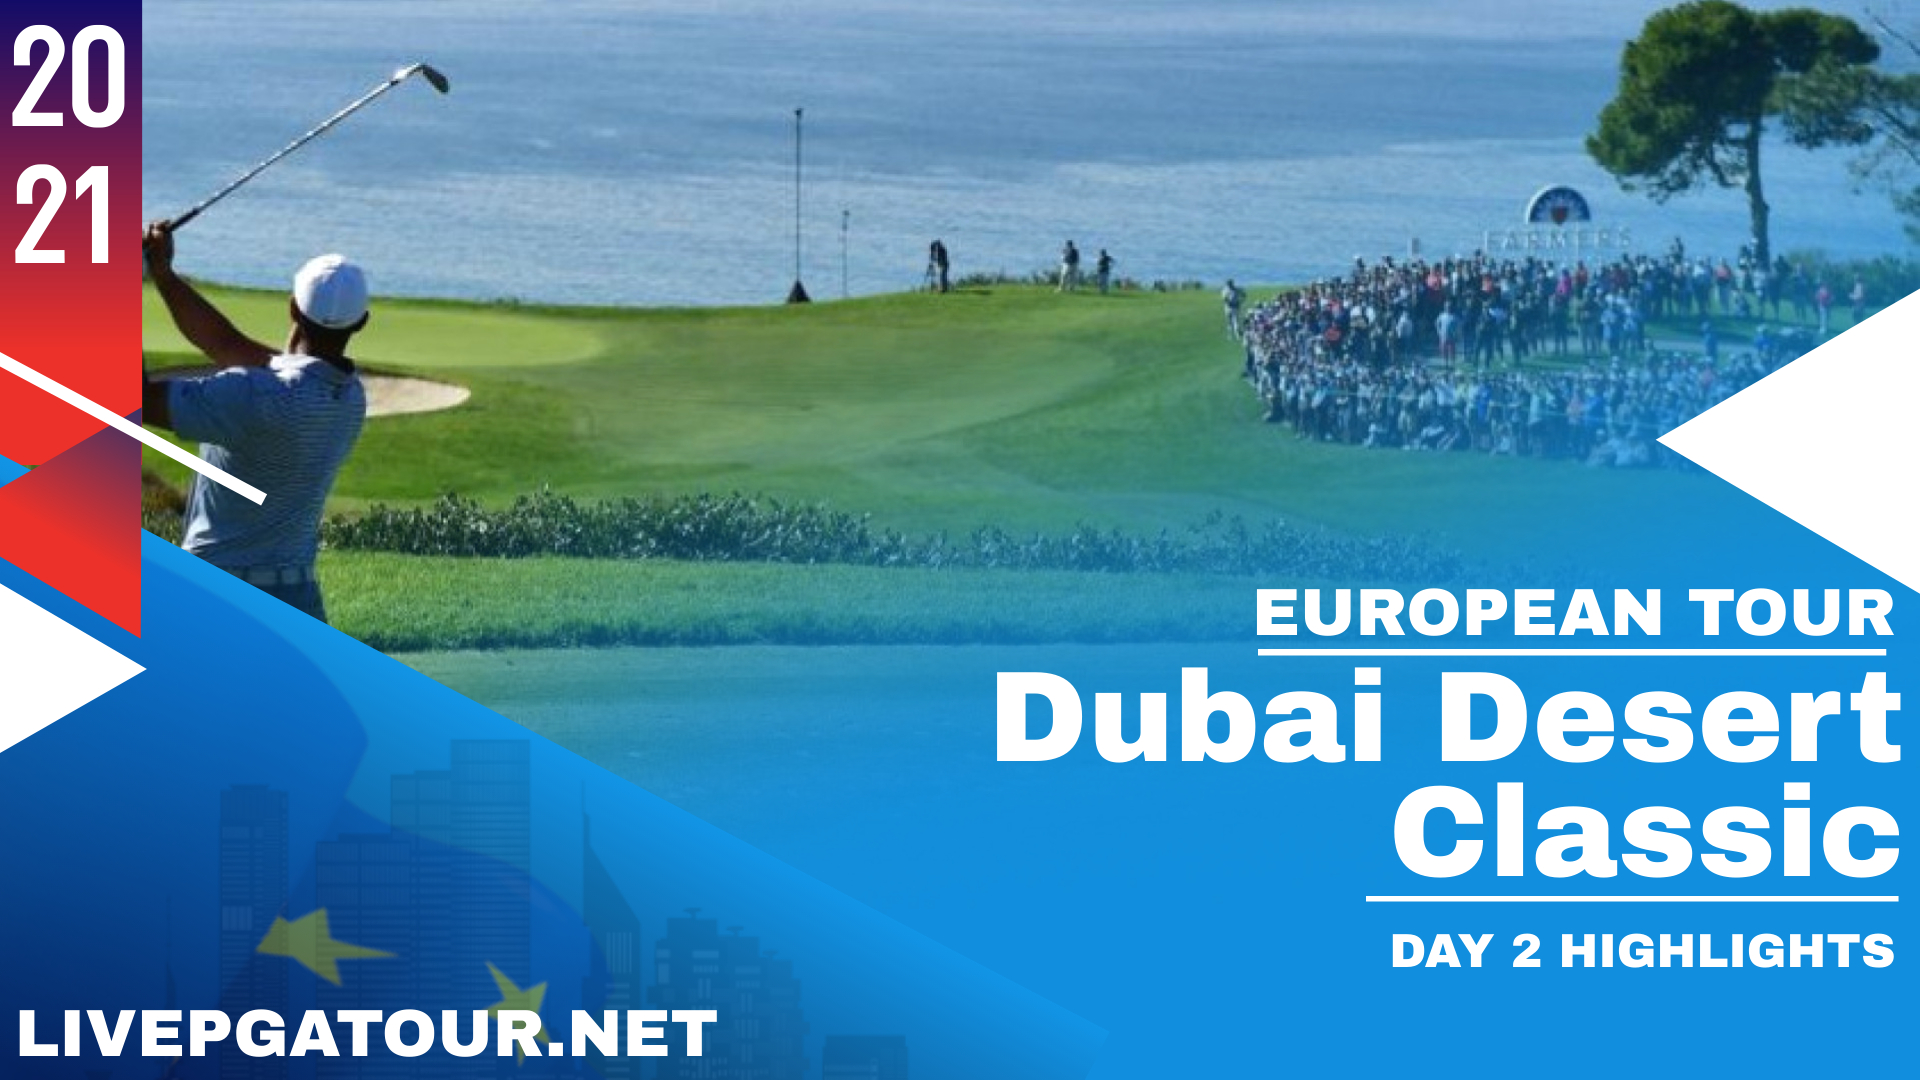 Dubai Desert Classic Day 2 Highlights 2021 European Tour